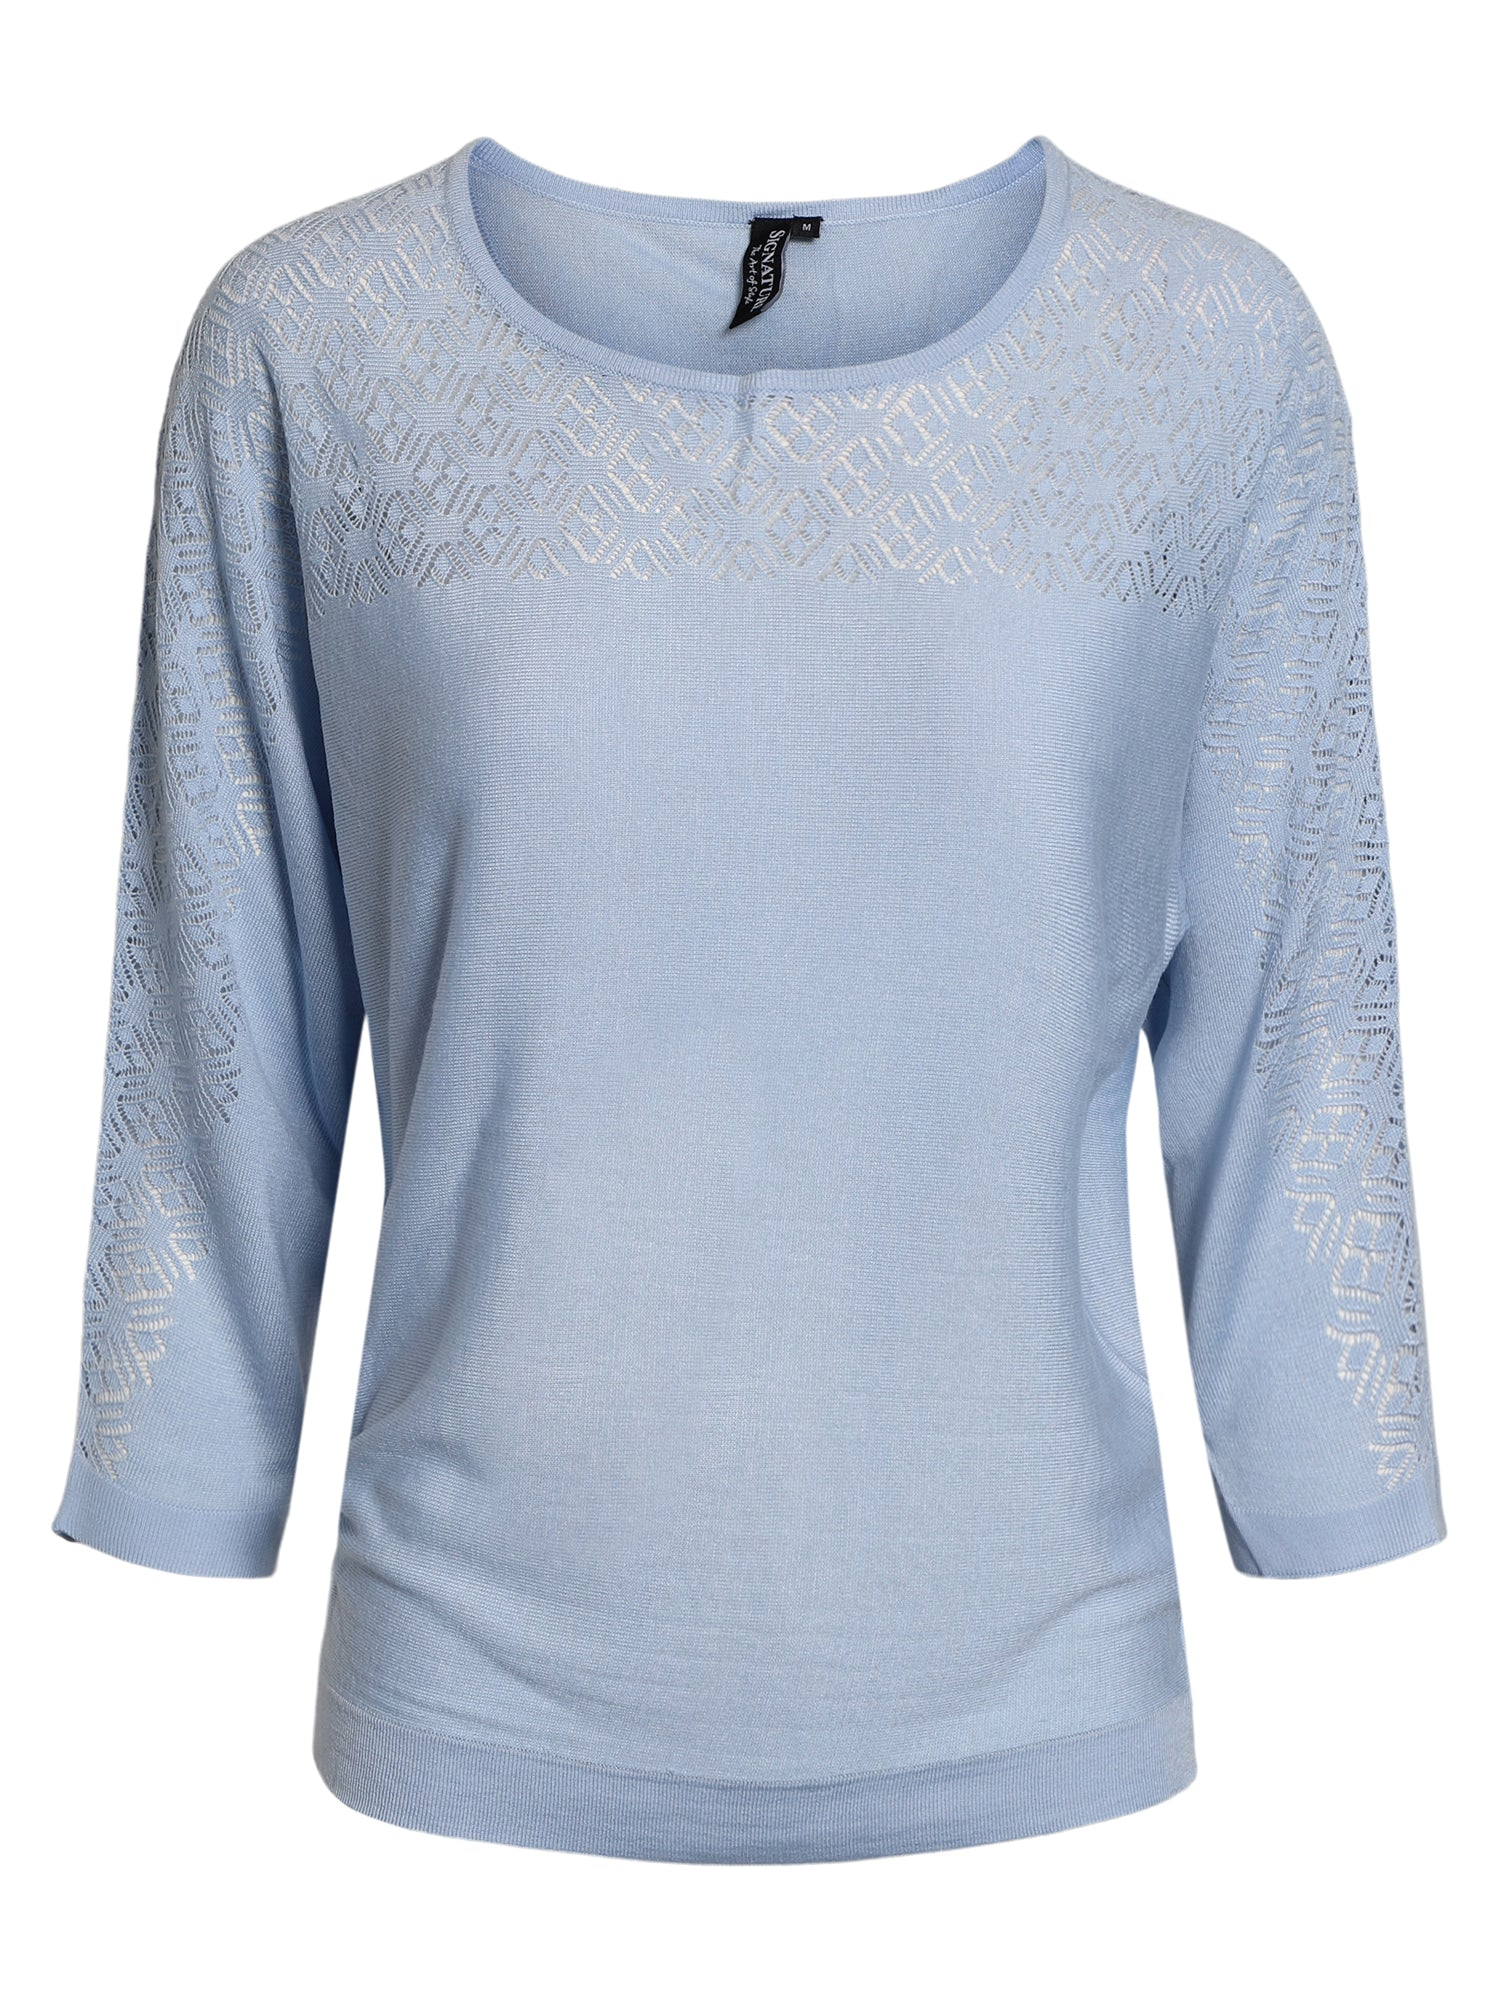 Image of   Pullover - Cashmere Blue